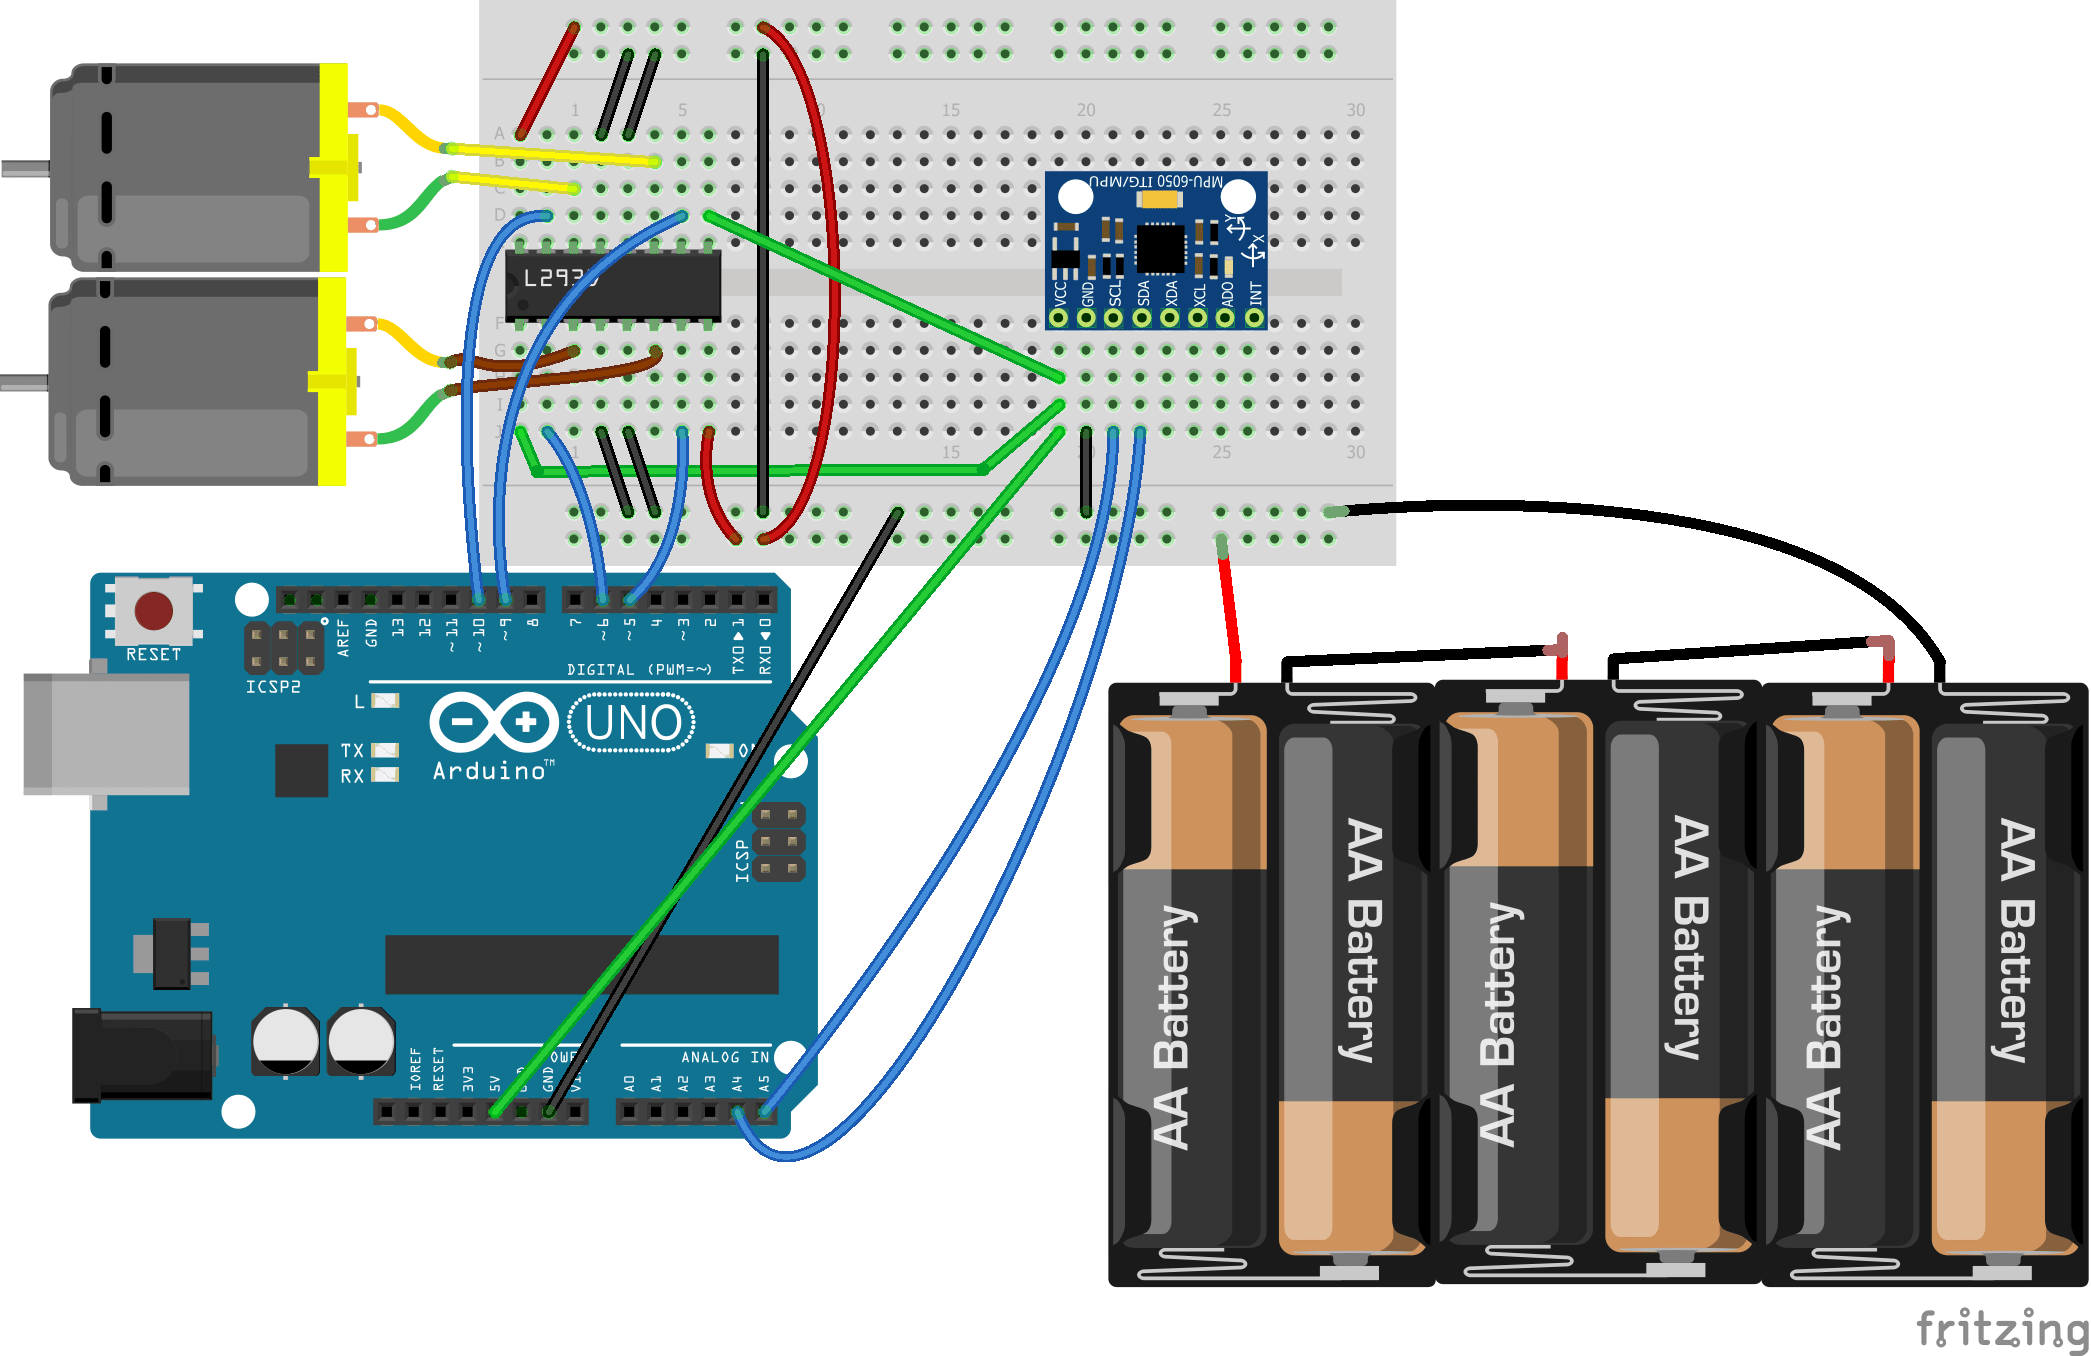 DC Motor Speed Control using GY 521 Gyro/Accelerometer and